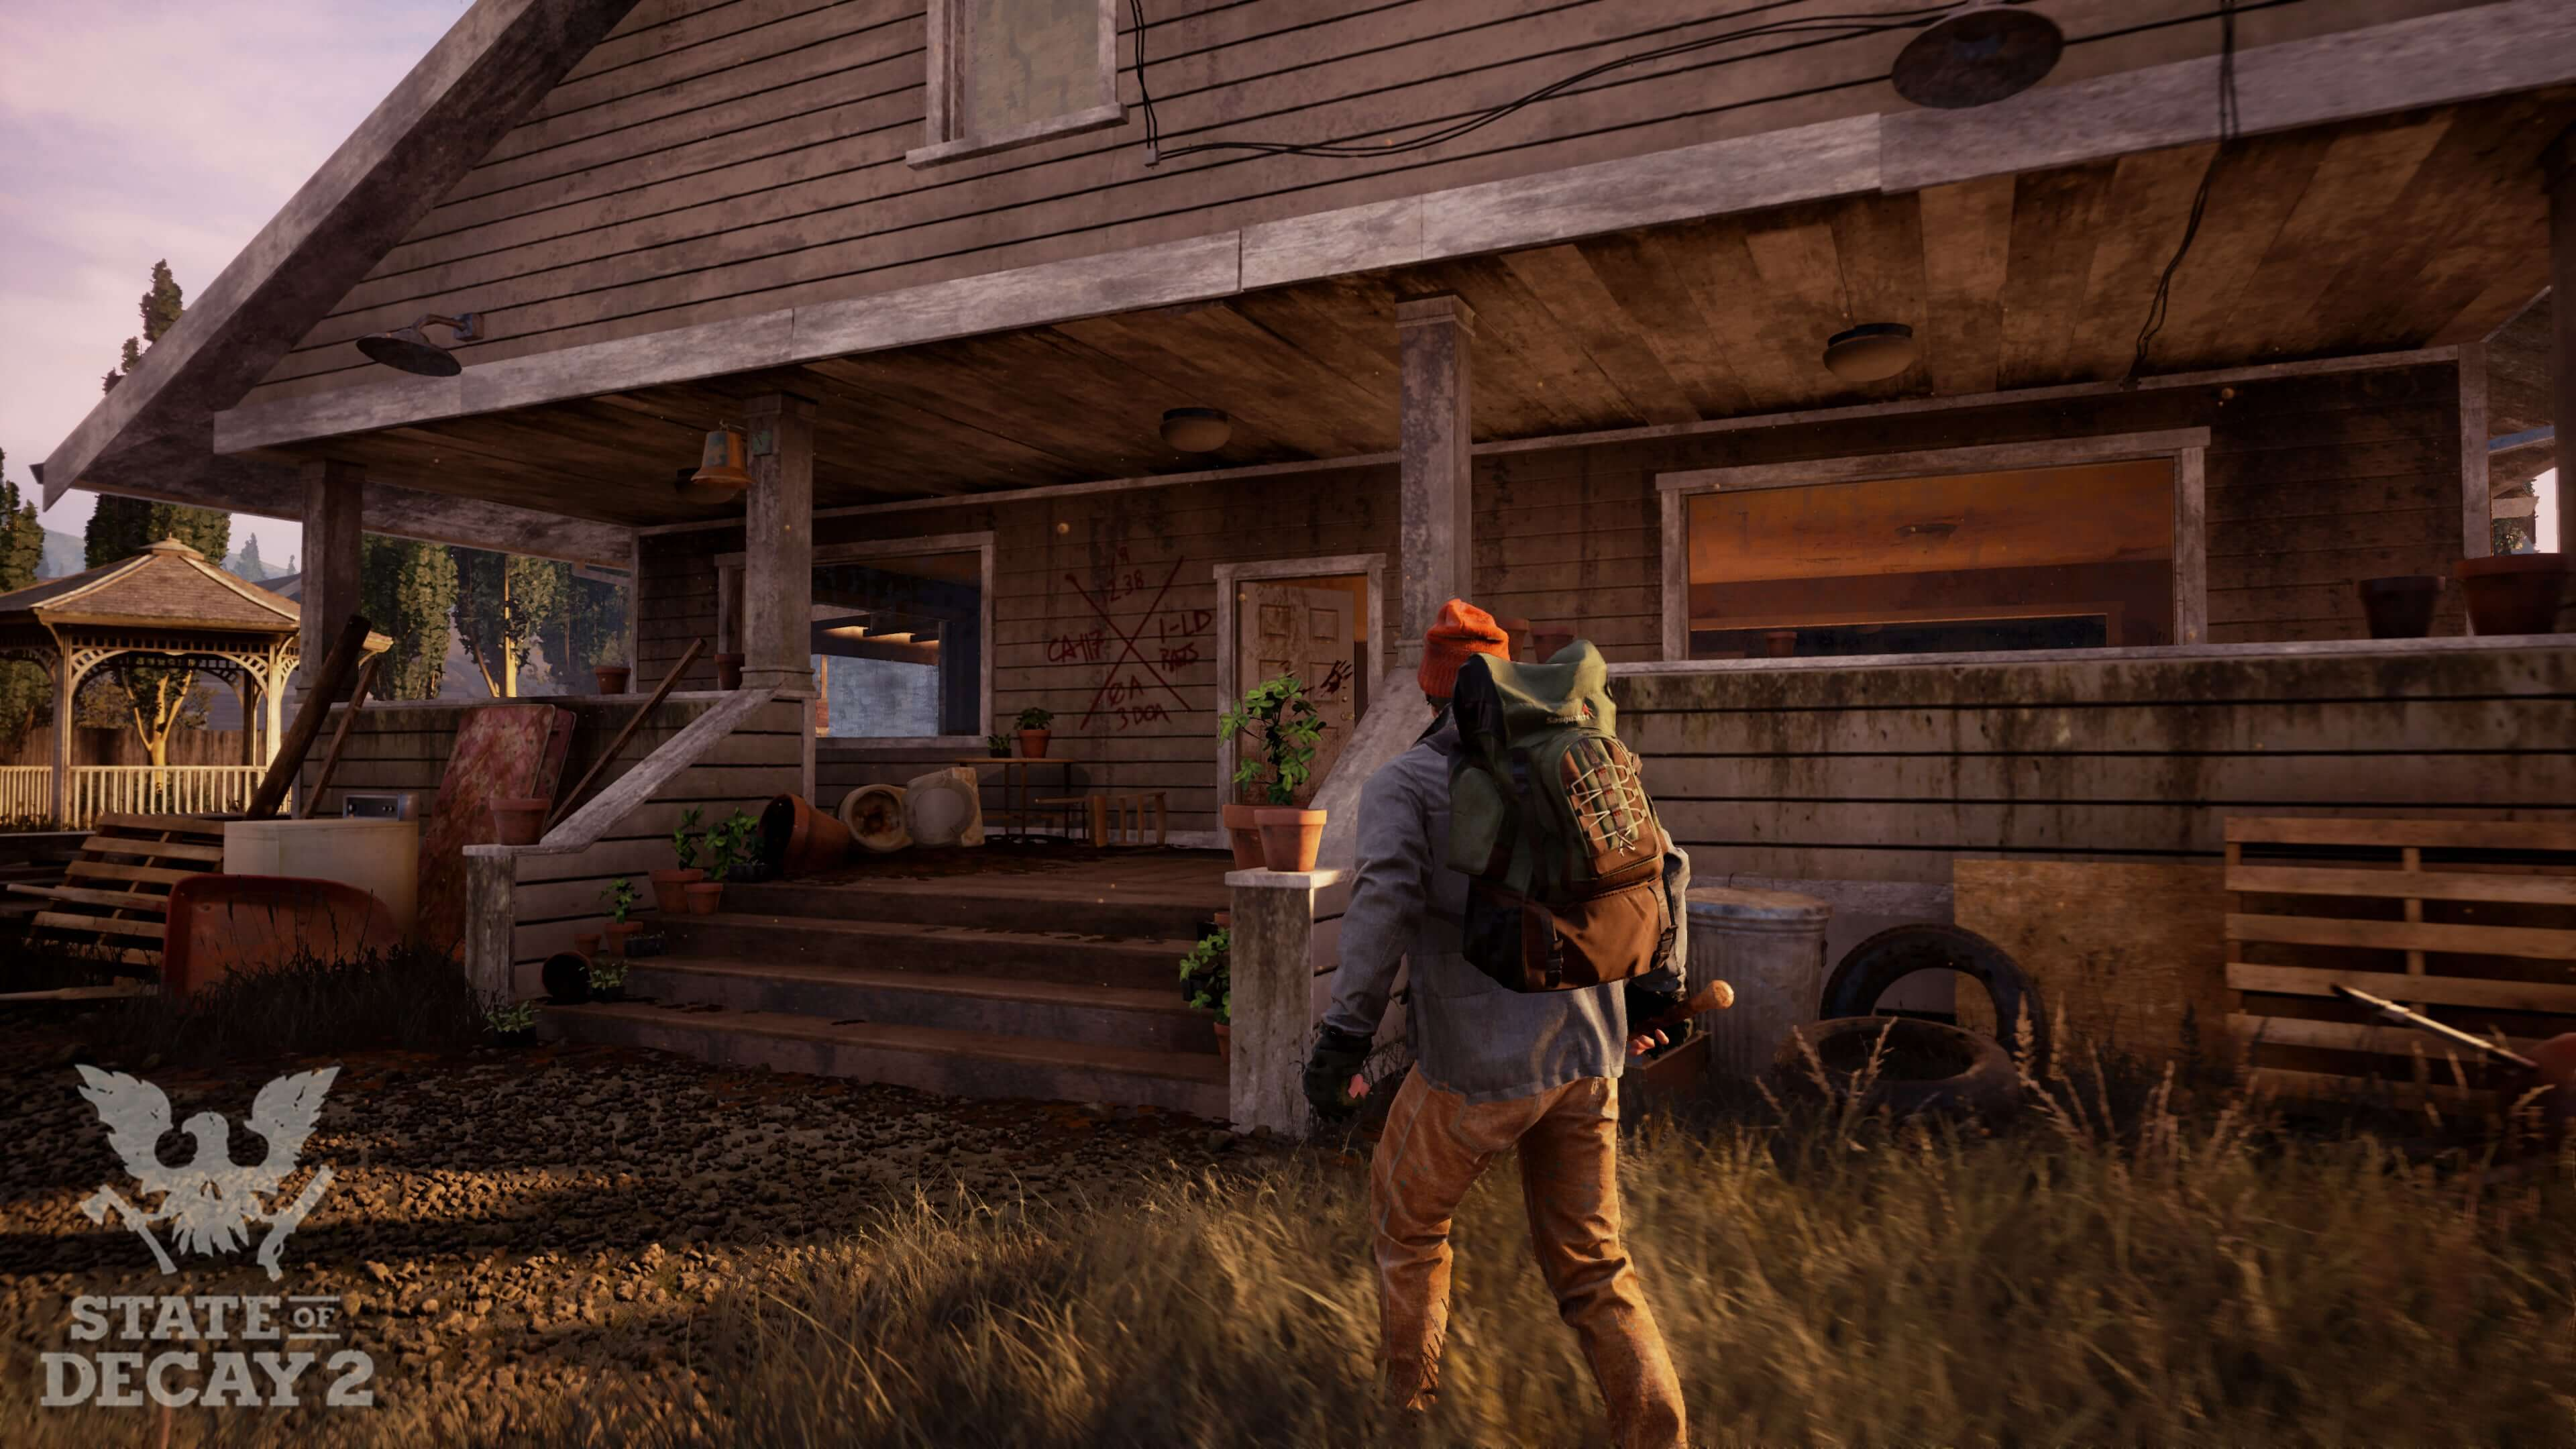 State of Decay 2 gets 17 minutes of opening gameplay footage